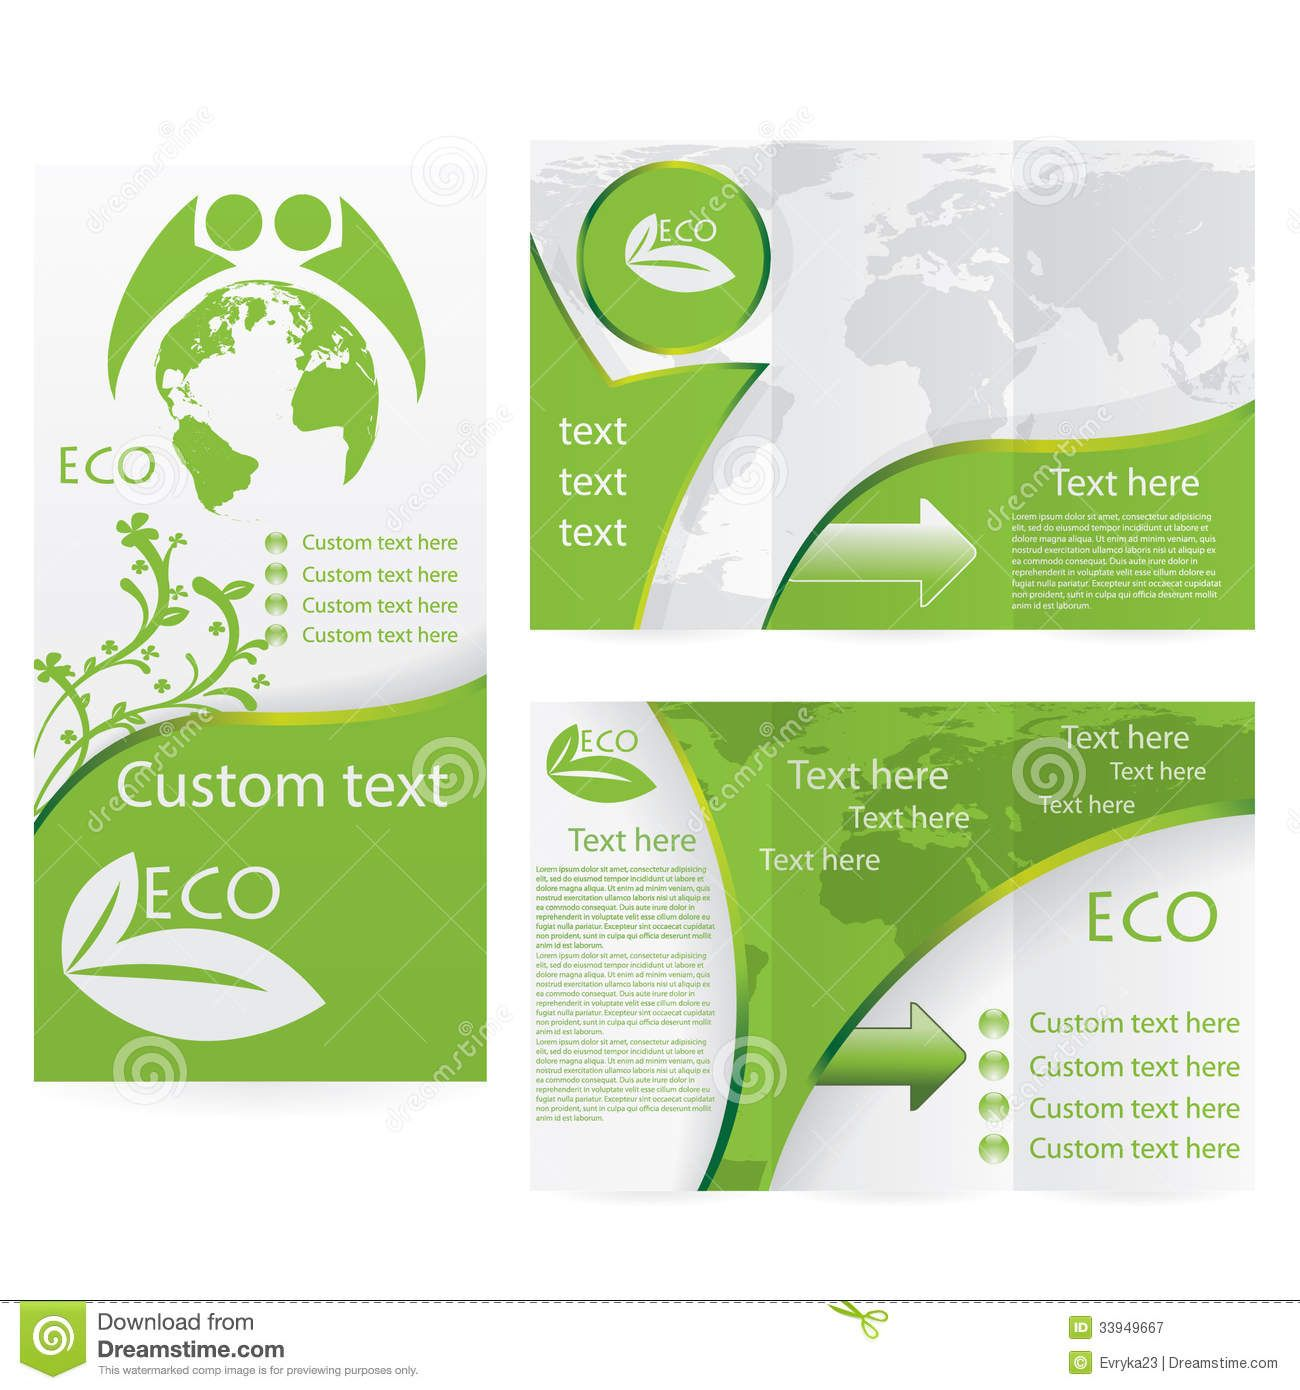 Brochure Inspiration Layout And Color Vectorbrochurelayout - Brochure template ideas